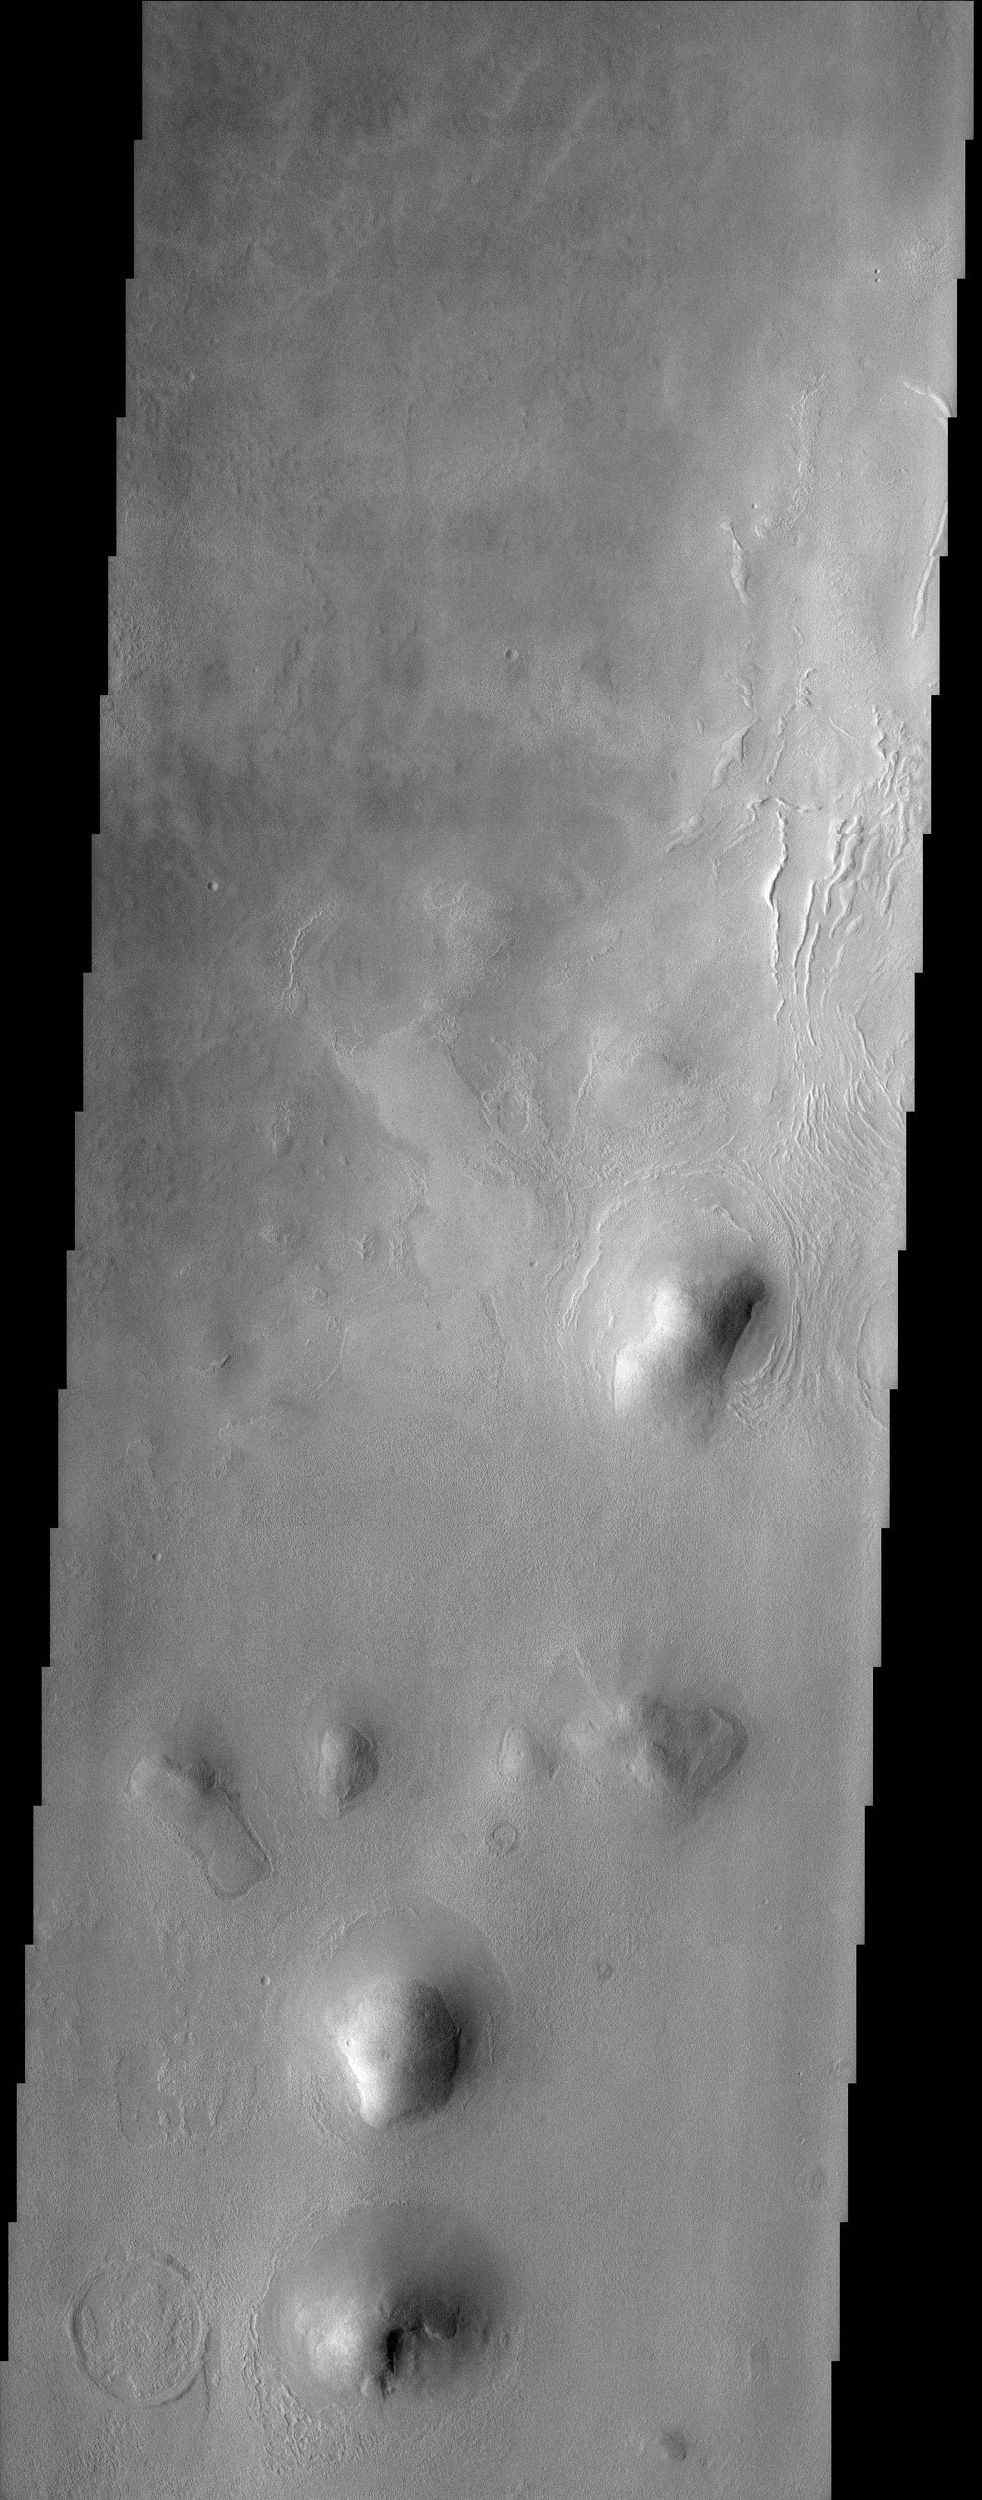 This NASA Mars Odyssey image of rounded hills and ridges in Arcadia Planitia shows a very intriguing geomorphic feature that may be attributed to the presence of an icy-rock mixture of material.